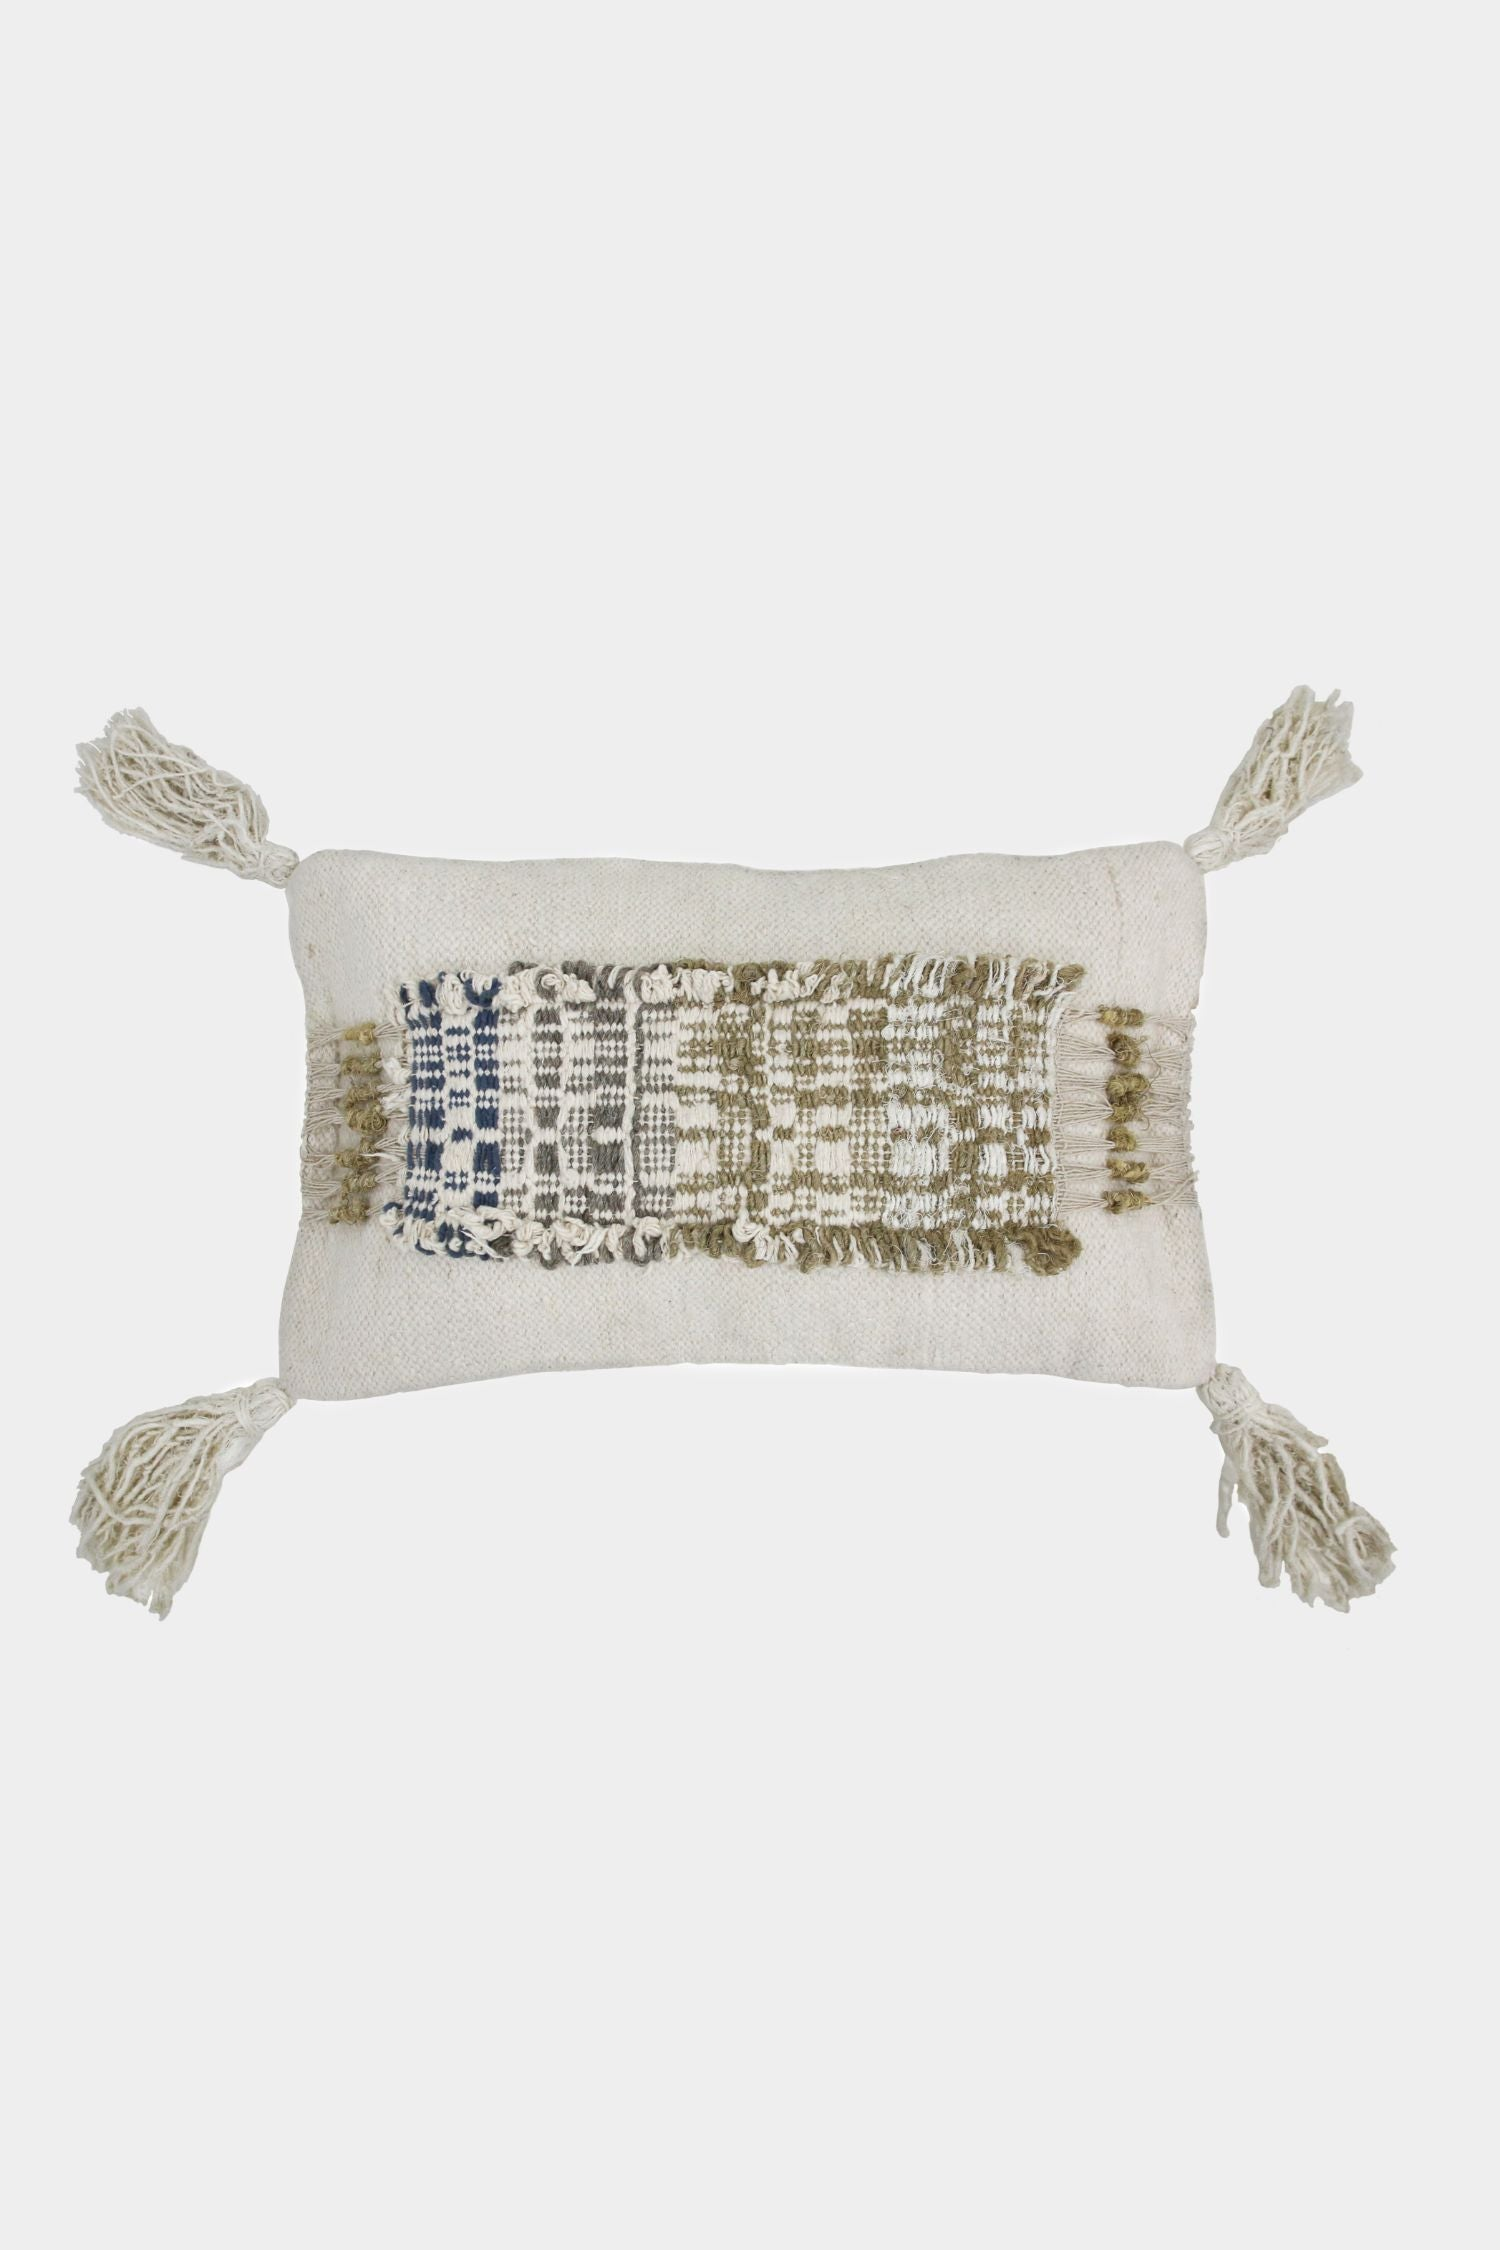 wabi sabi cushion cover